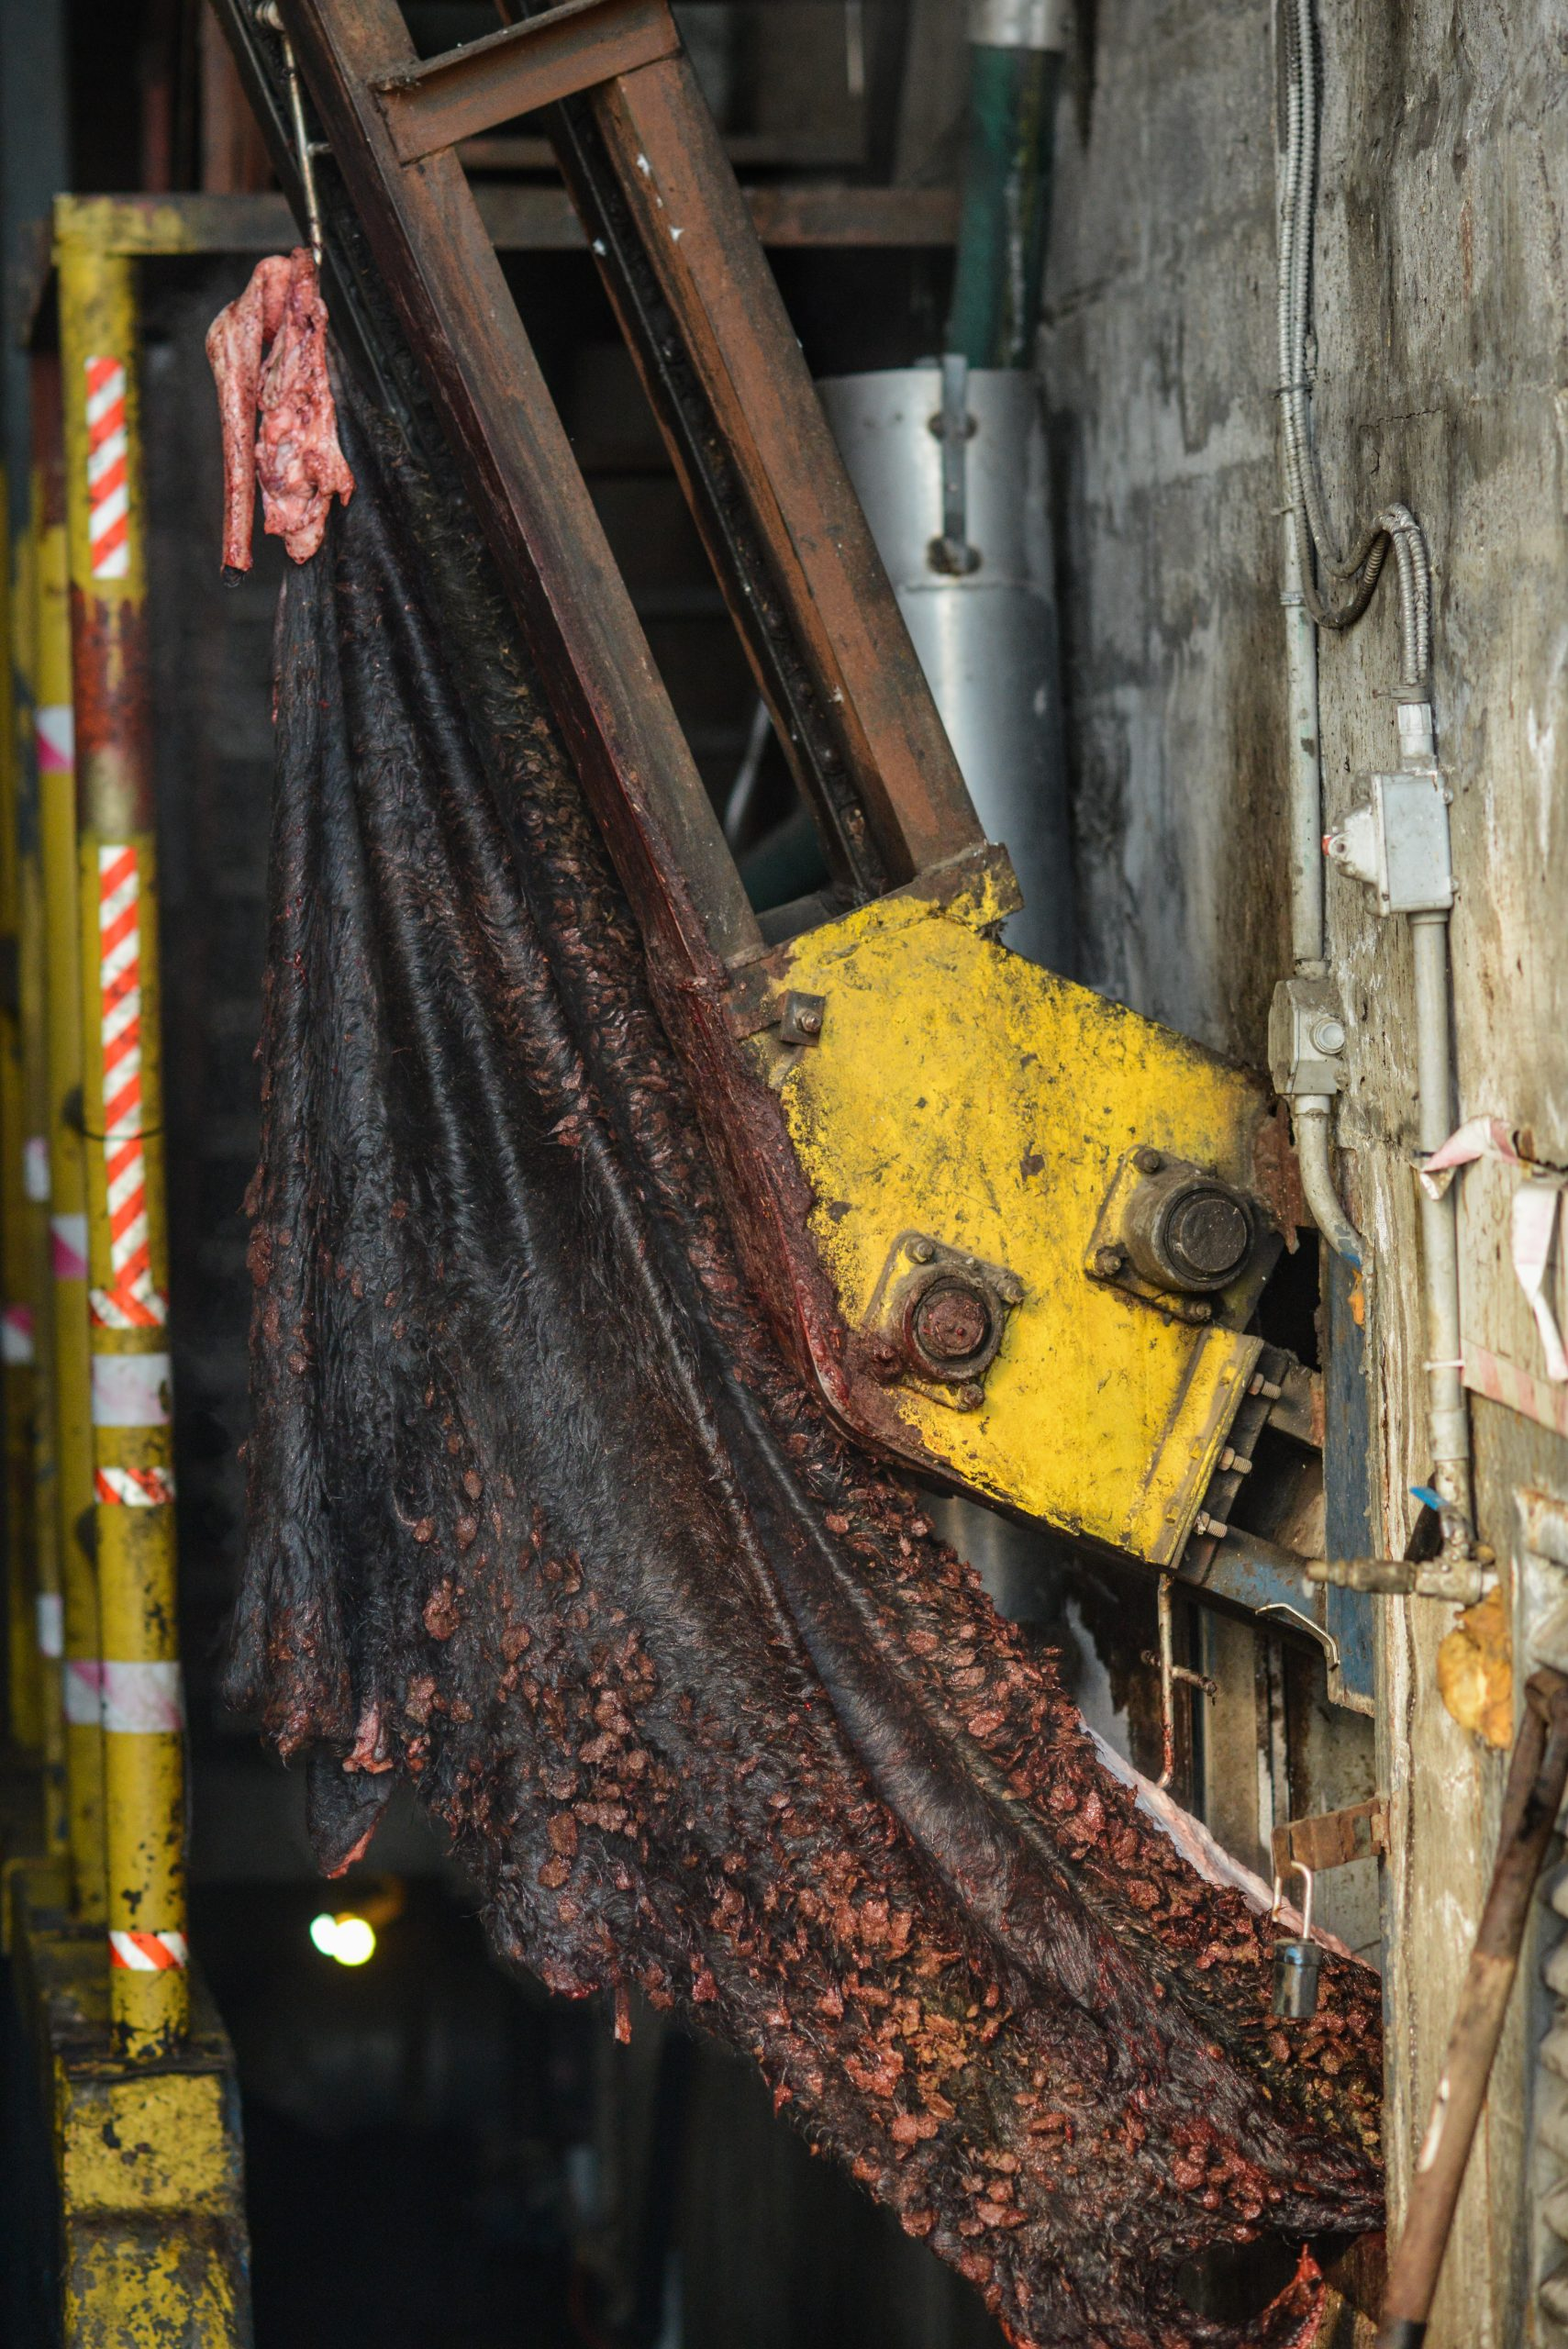 Vertical explainer photo 2 - Recently Slaughtered Steaming Animal Skin Being Loaded Onto A Truck